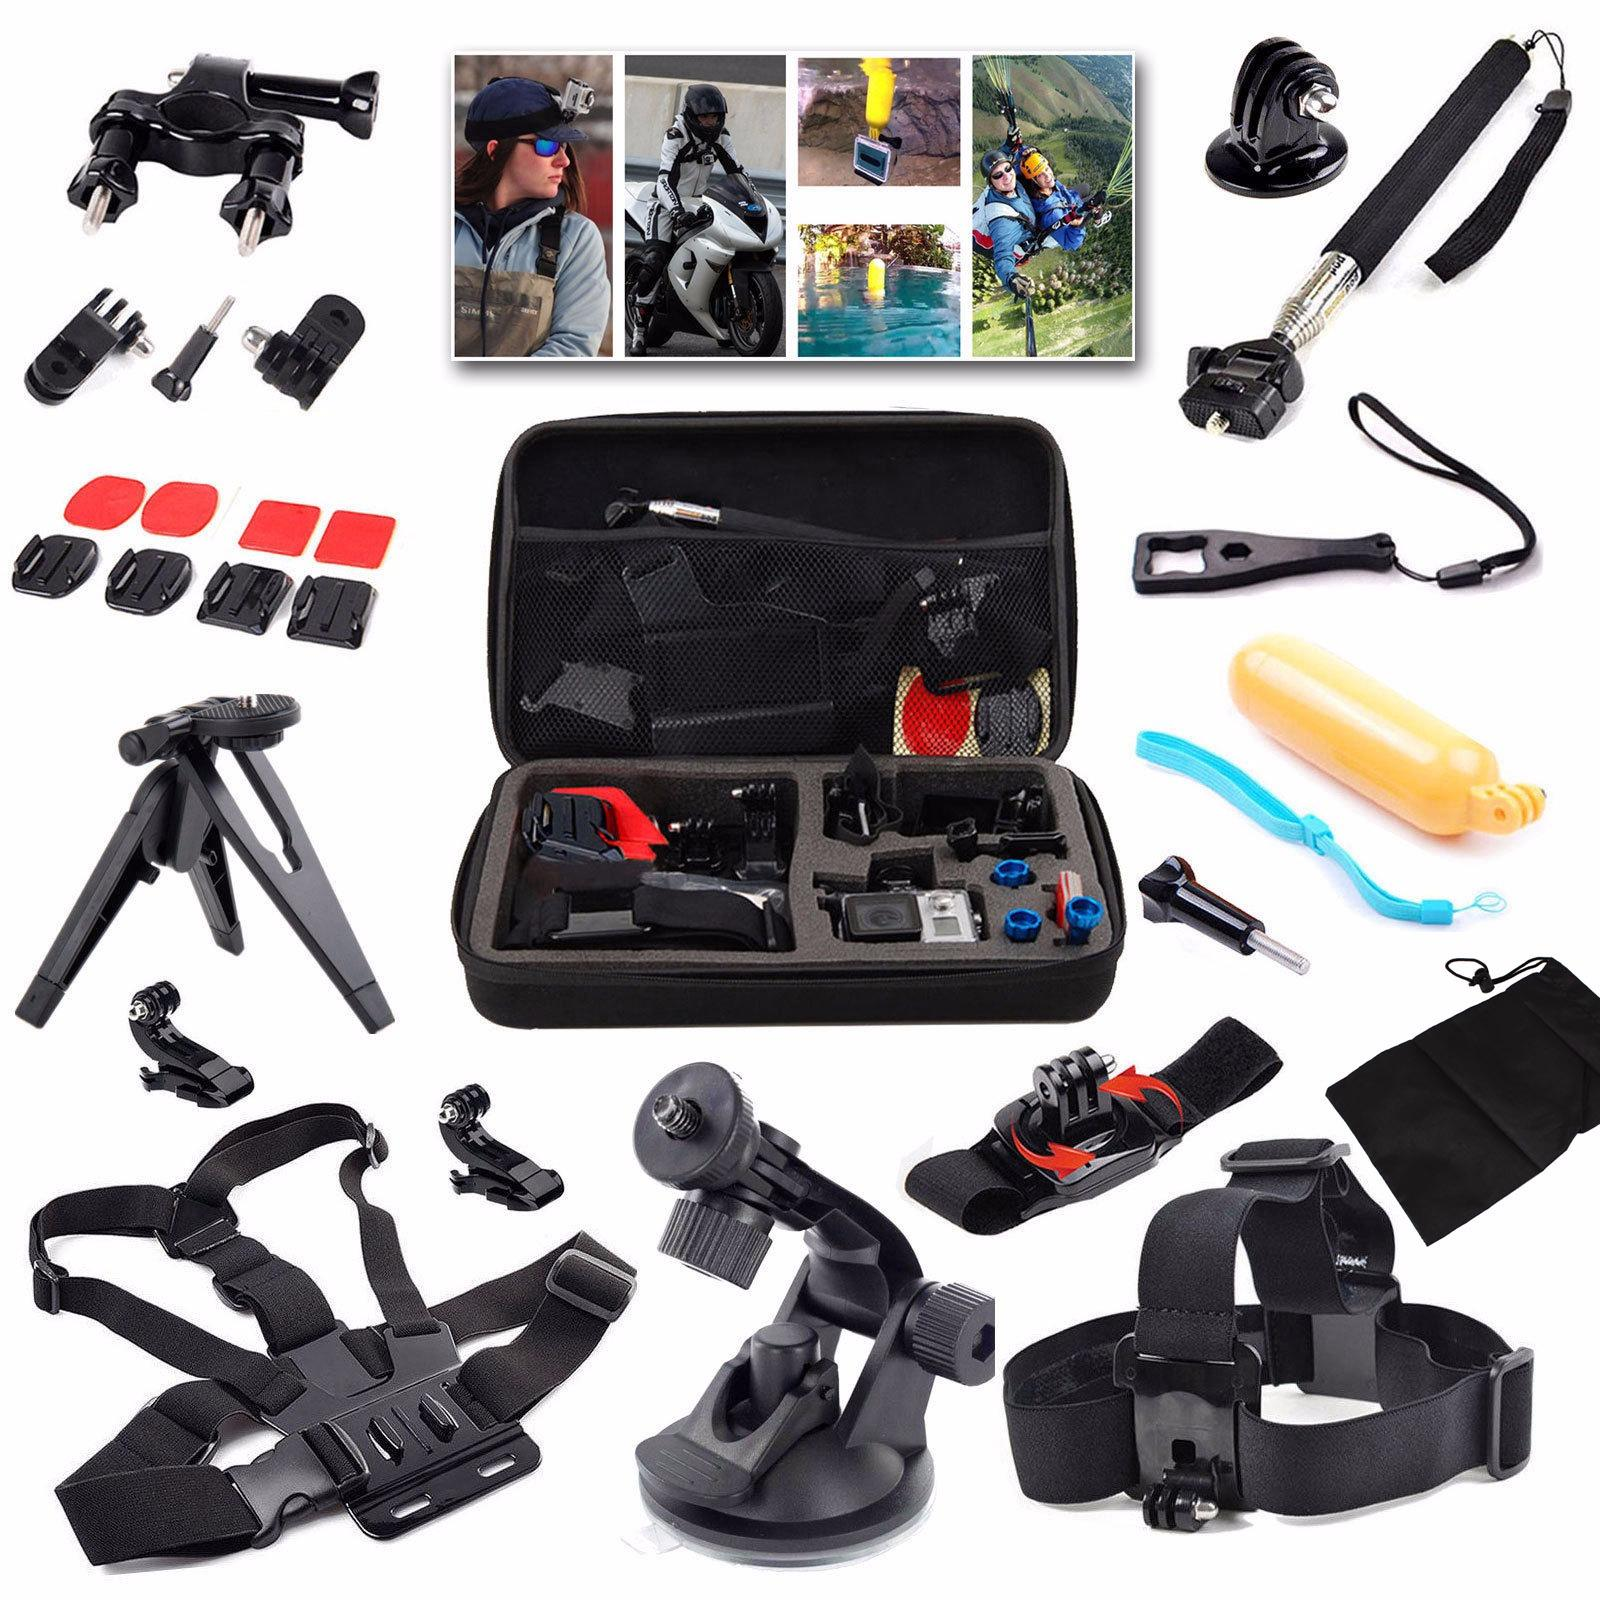 Sports Accessories Kit For Gopro 4 3 2 1 Outdoor Action Camera Accessories For Sj4000 Sj5000 Sj5000X Sj6 Legend Sjcam M20 4K Xiaomi Yi 4K On Line